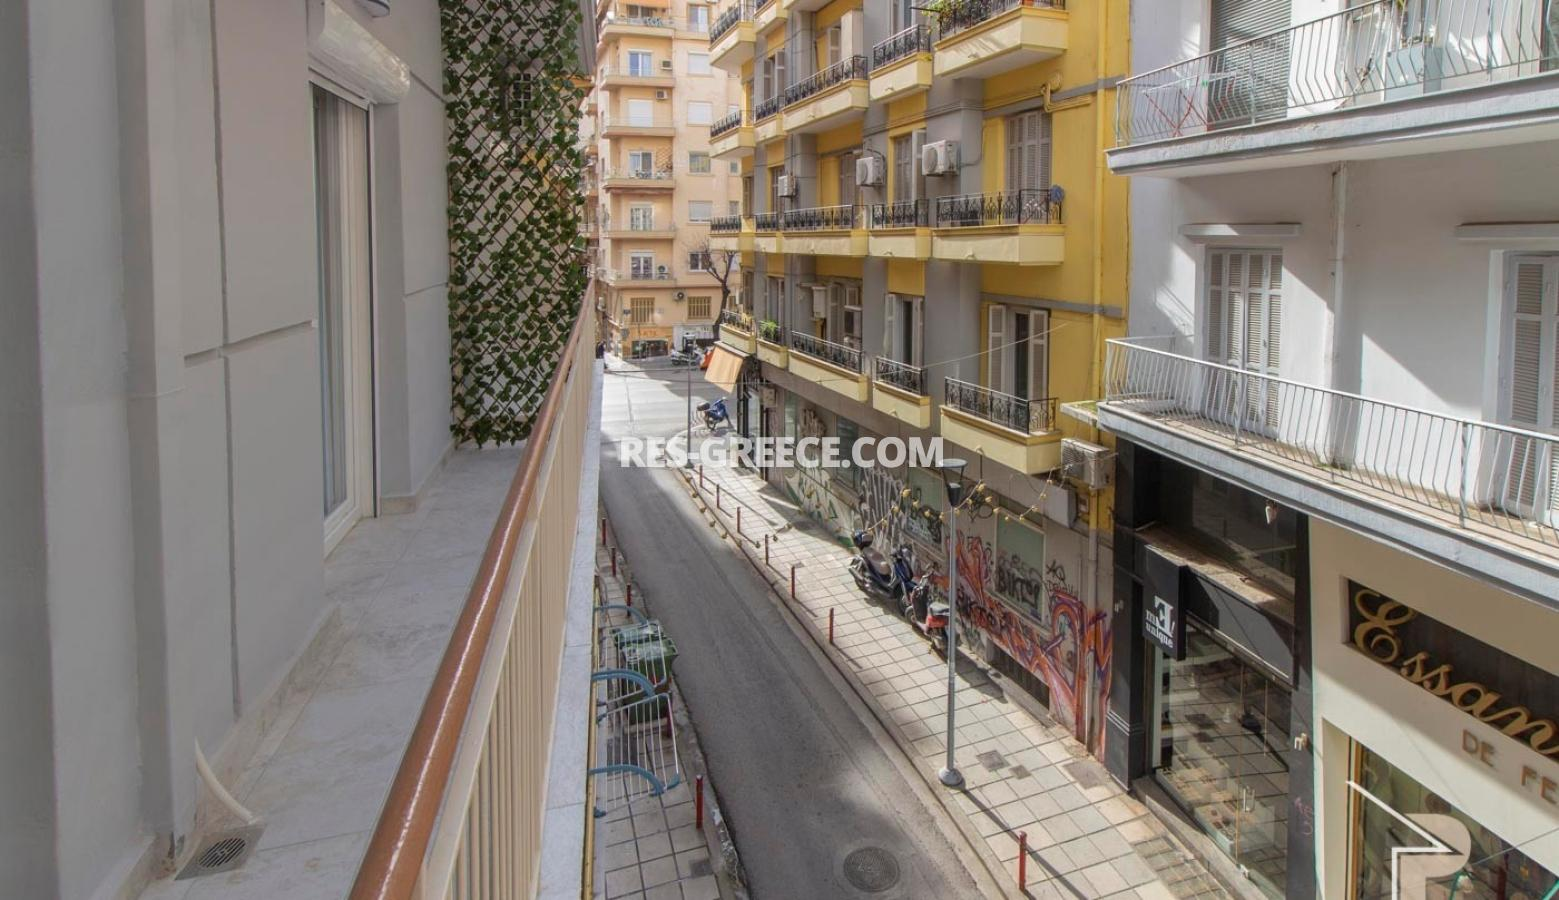 ?.Foka B, Central Macedonia, Greece - apartments in Thessaloniki center for long-term or short-term rent - Photo 14